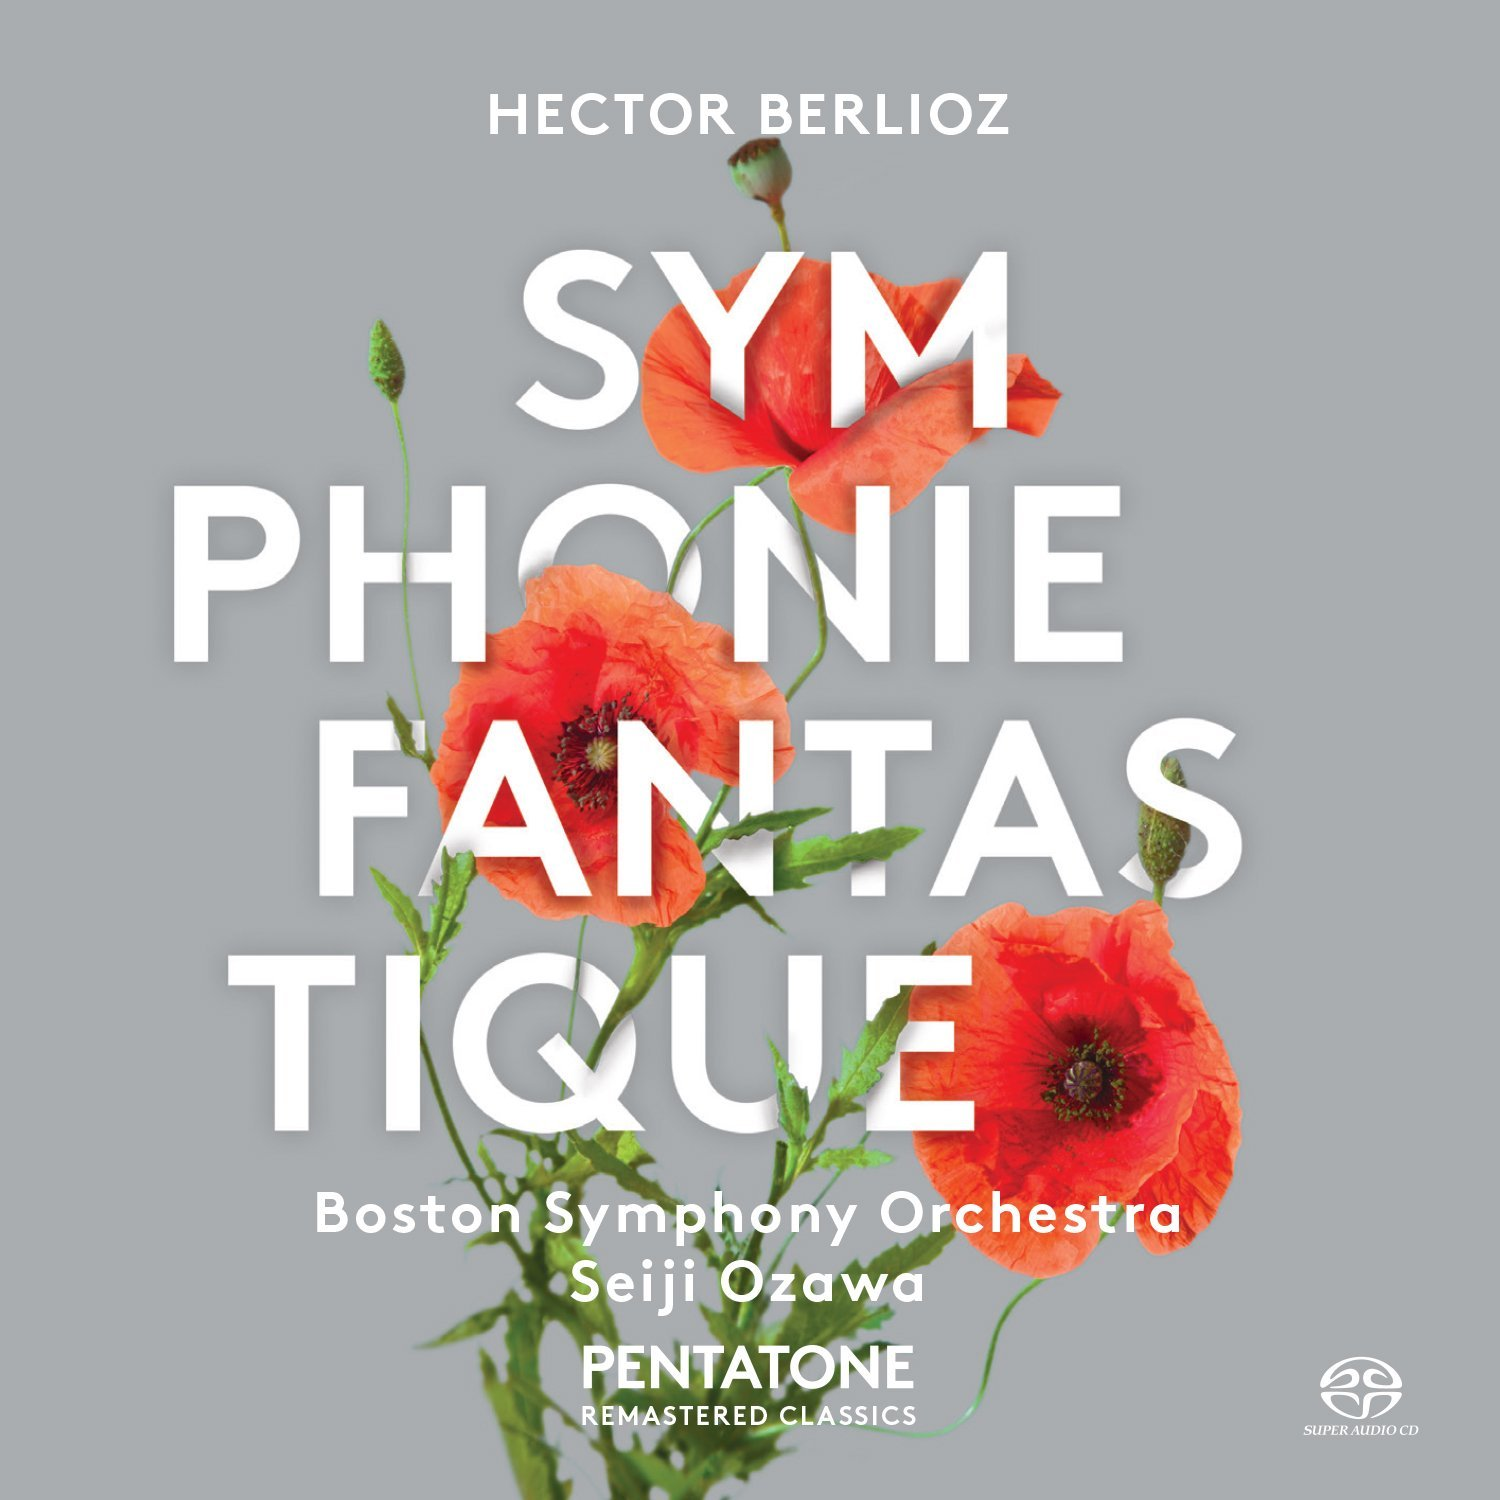 cover ozawa fantastique pentatone